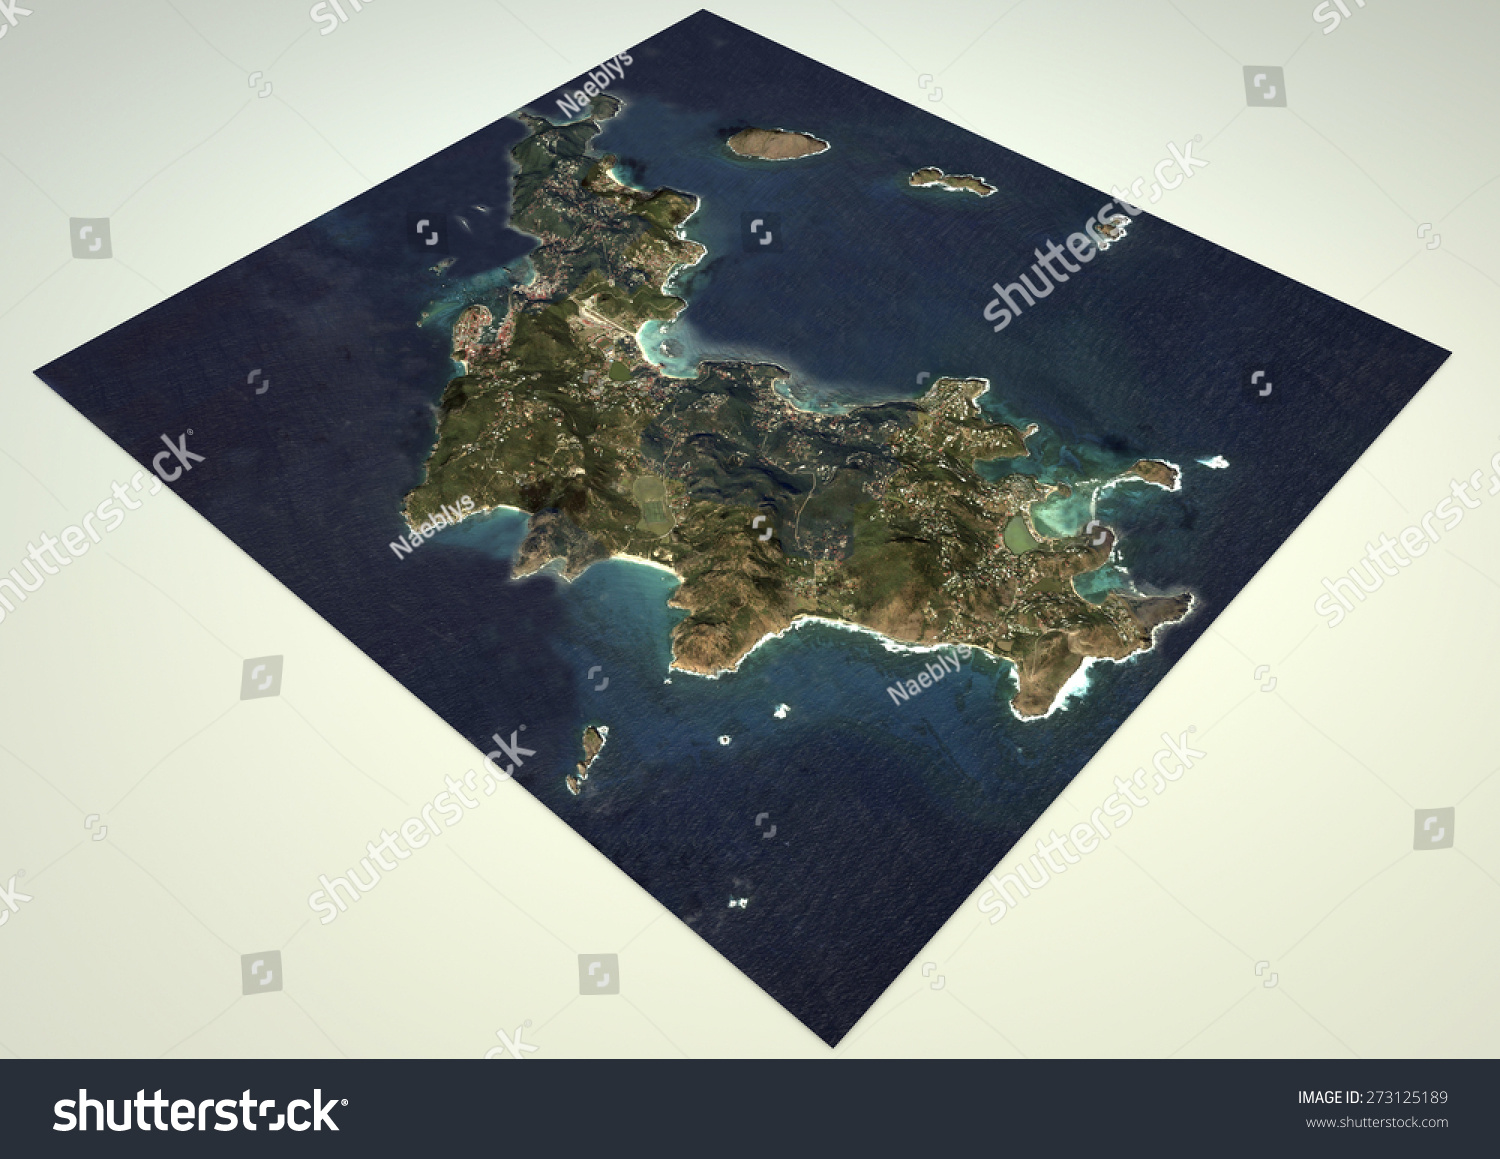 Satellite view saint barthelemy st barth stock illustration satellite view saint barthelemy st barth map section 3d element of this publicscrutiny Choice Image